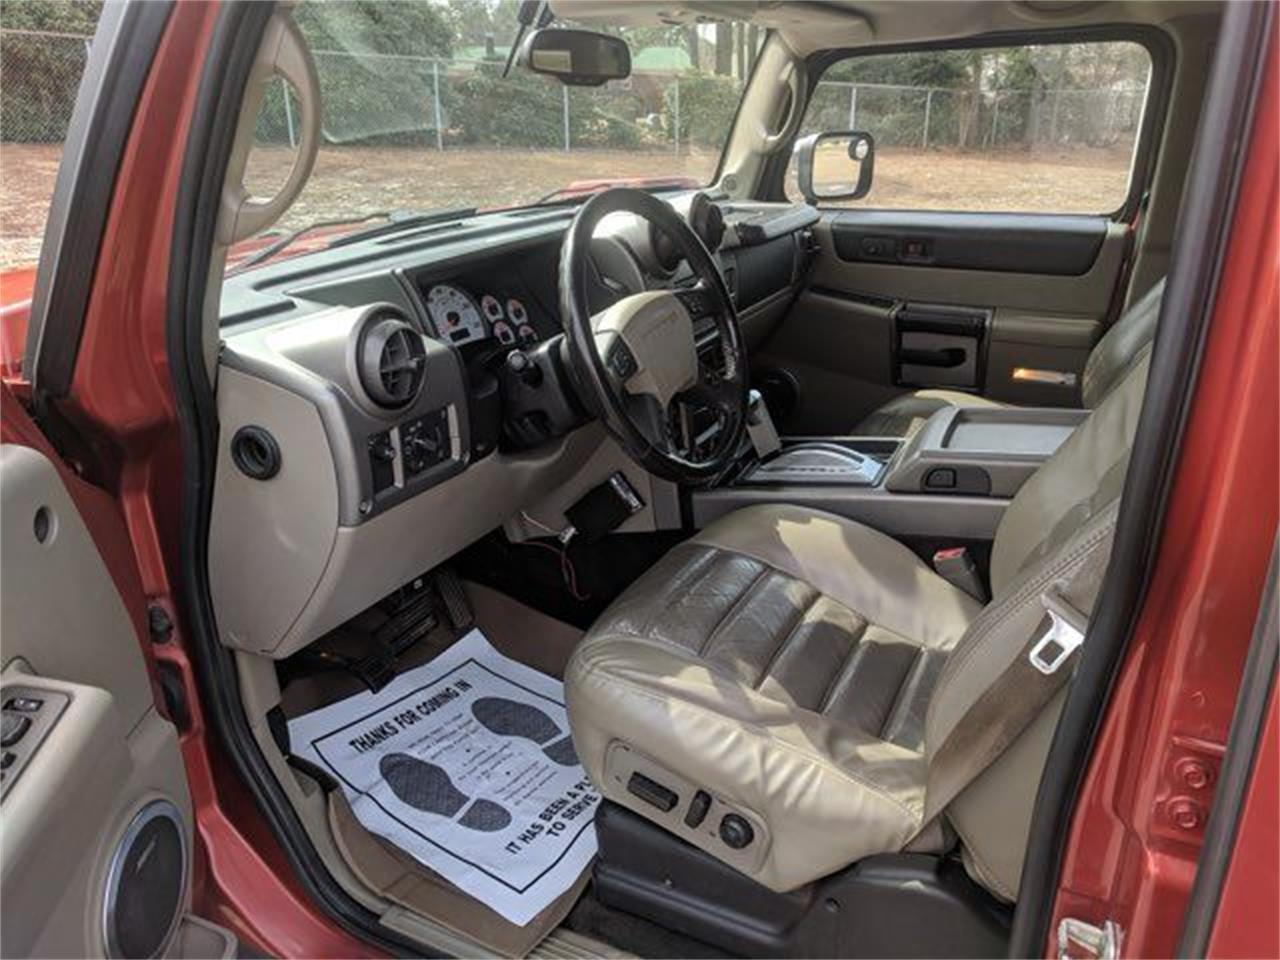 2003 Hummer H2 for sale in Hope Mills, NC – photo 17